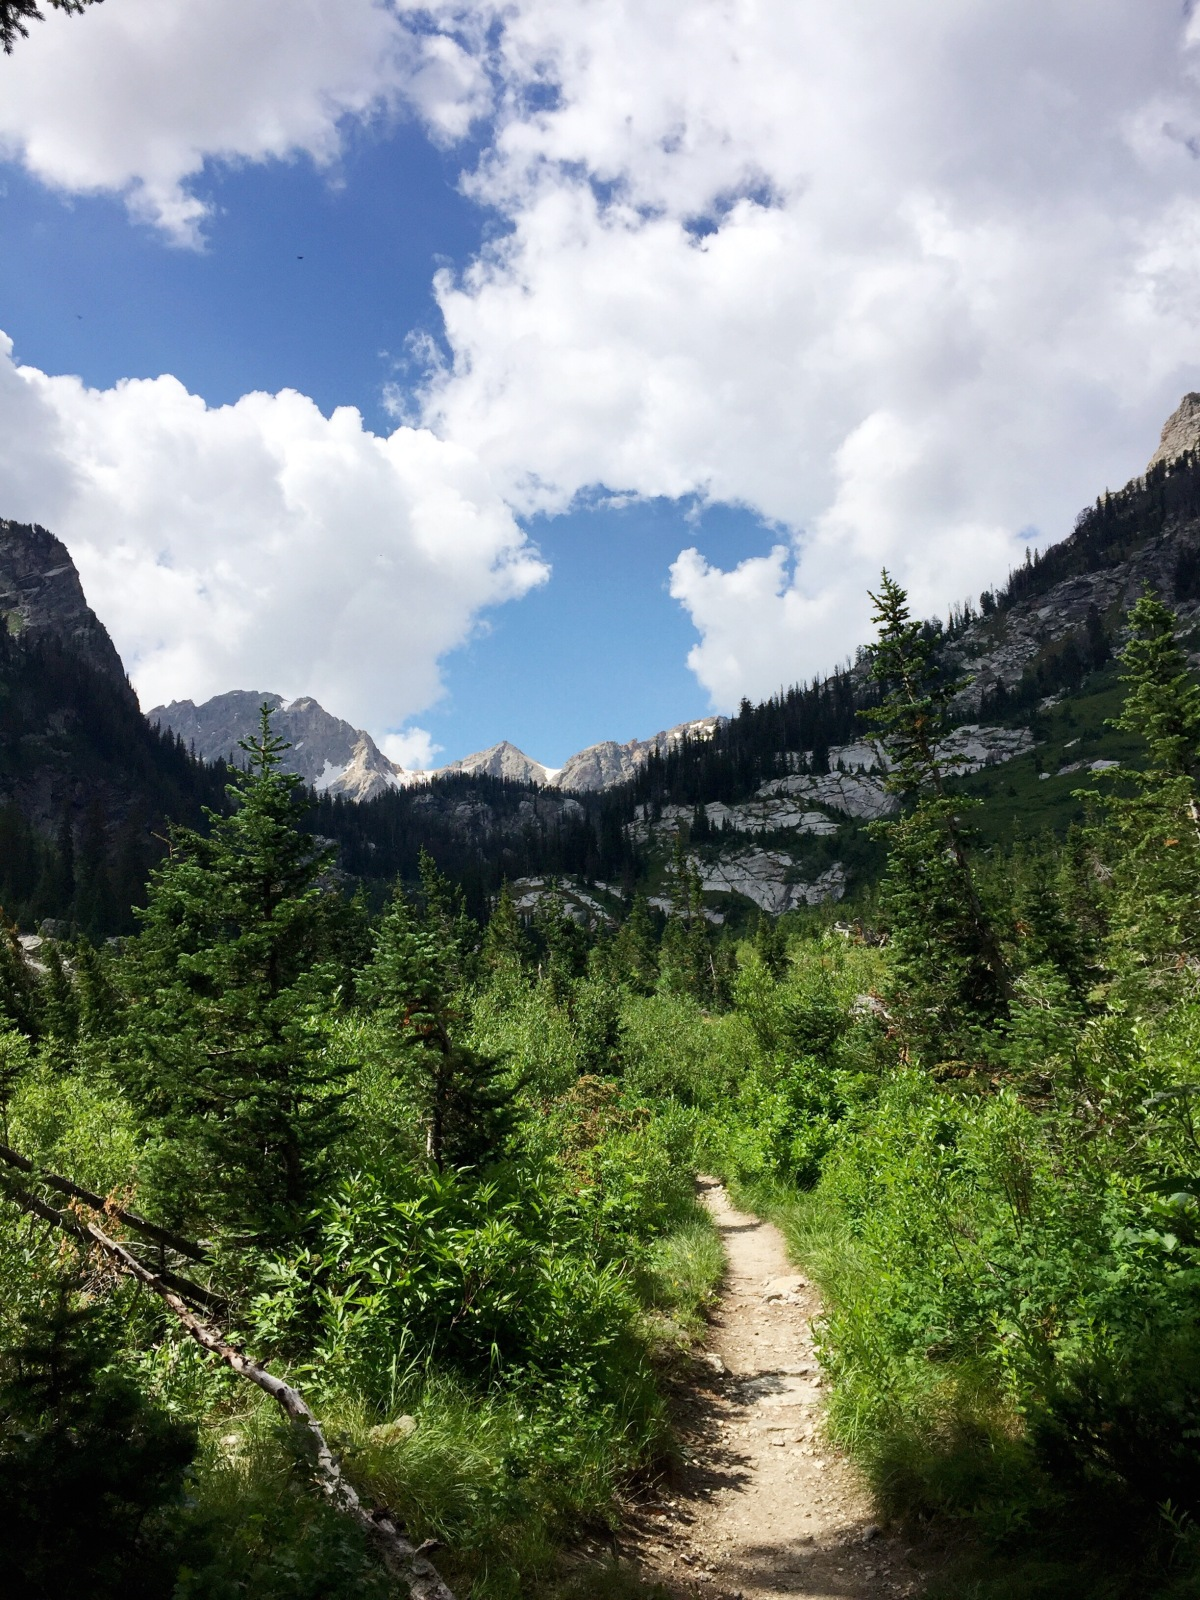 Spend a day hiking into beautiful Paintbrush Canyon in Grand Teton National Park. The views along the way are stunning, you won't be disappointed!